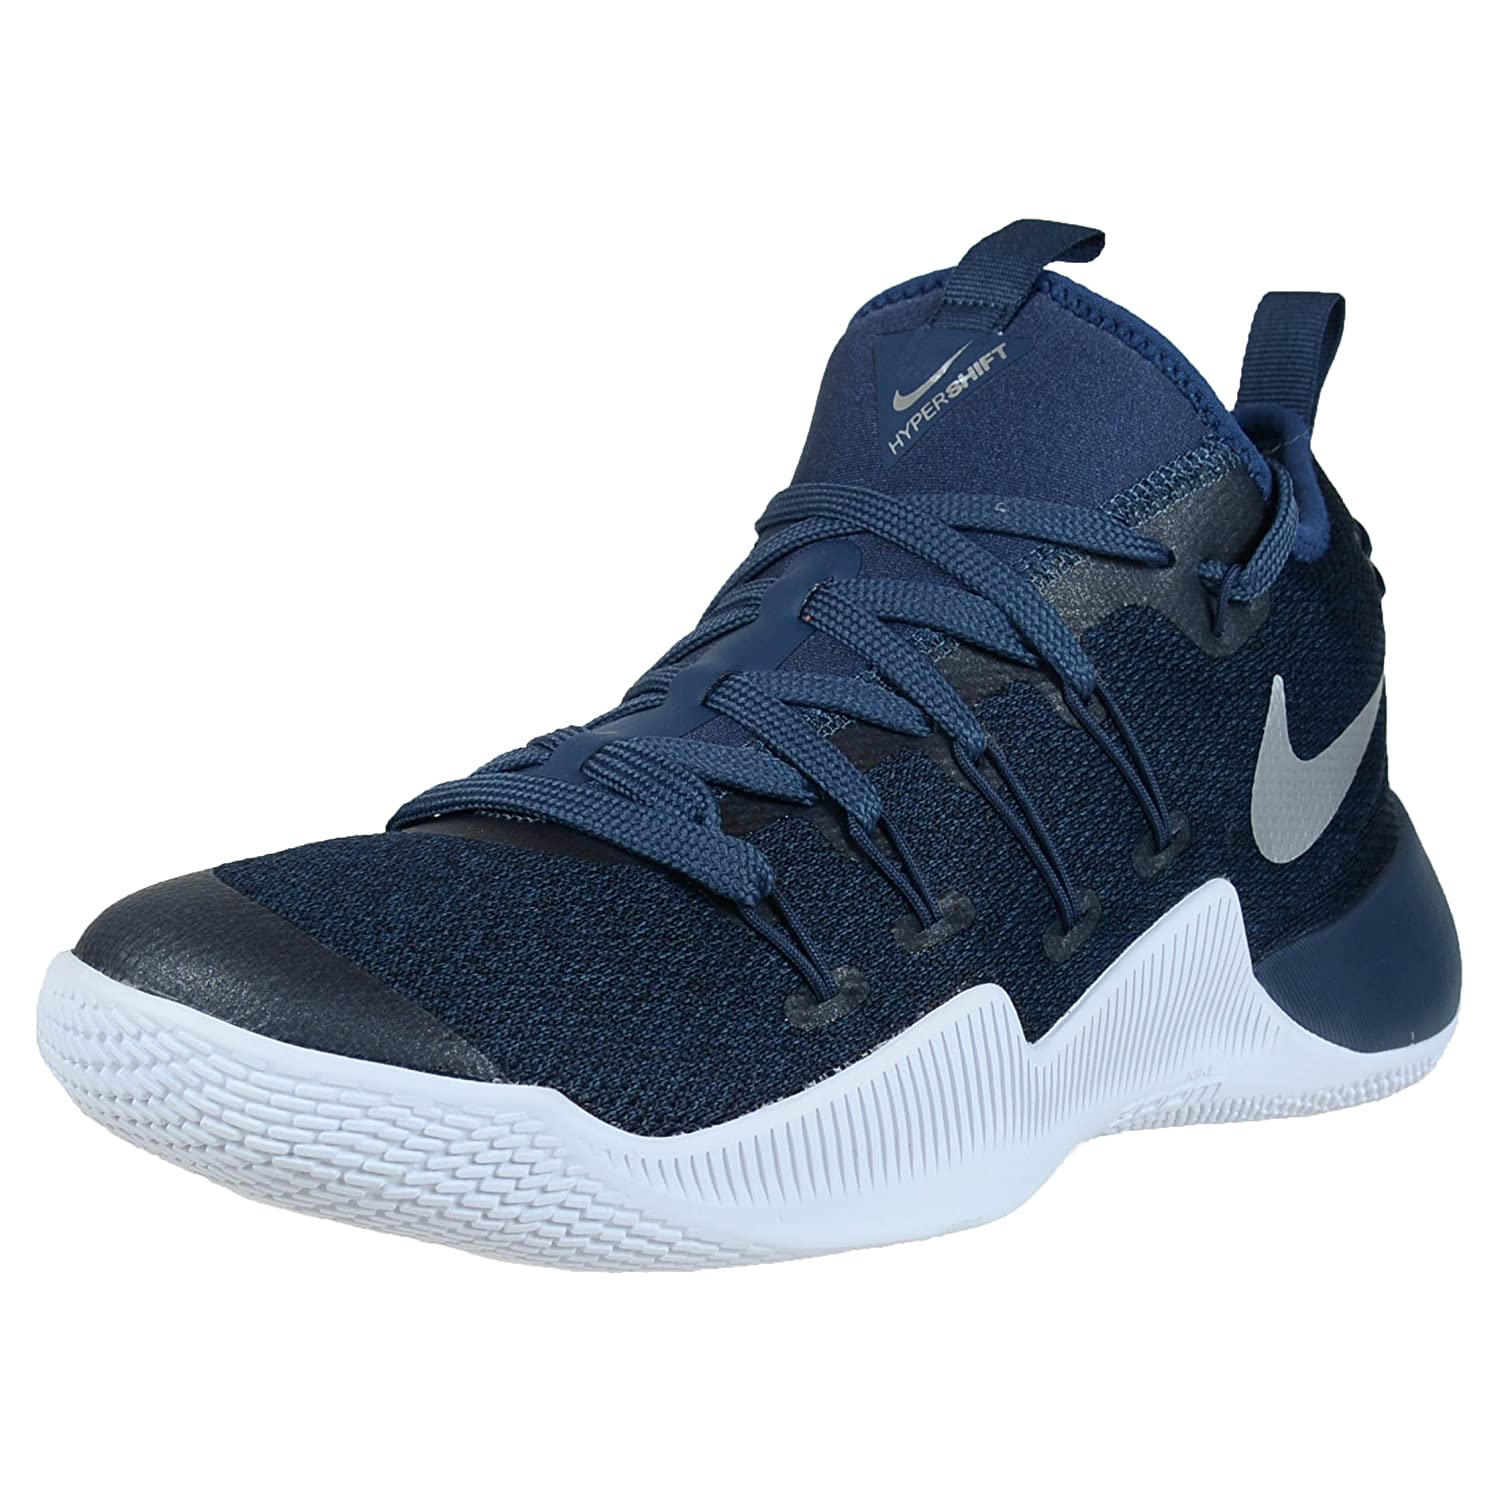 uk availability 59988 fb226 Amazon.com   Nike Mens Hypershift Basketball Shoes Squadron Blue Metallic  Silver (10.5)   Basketball